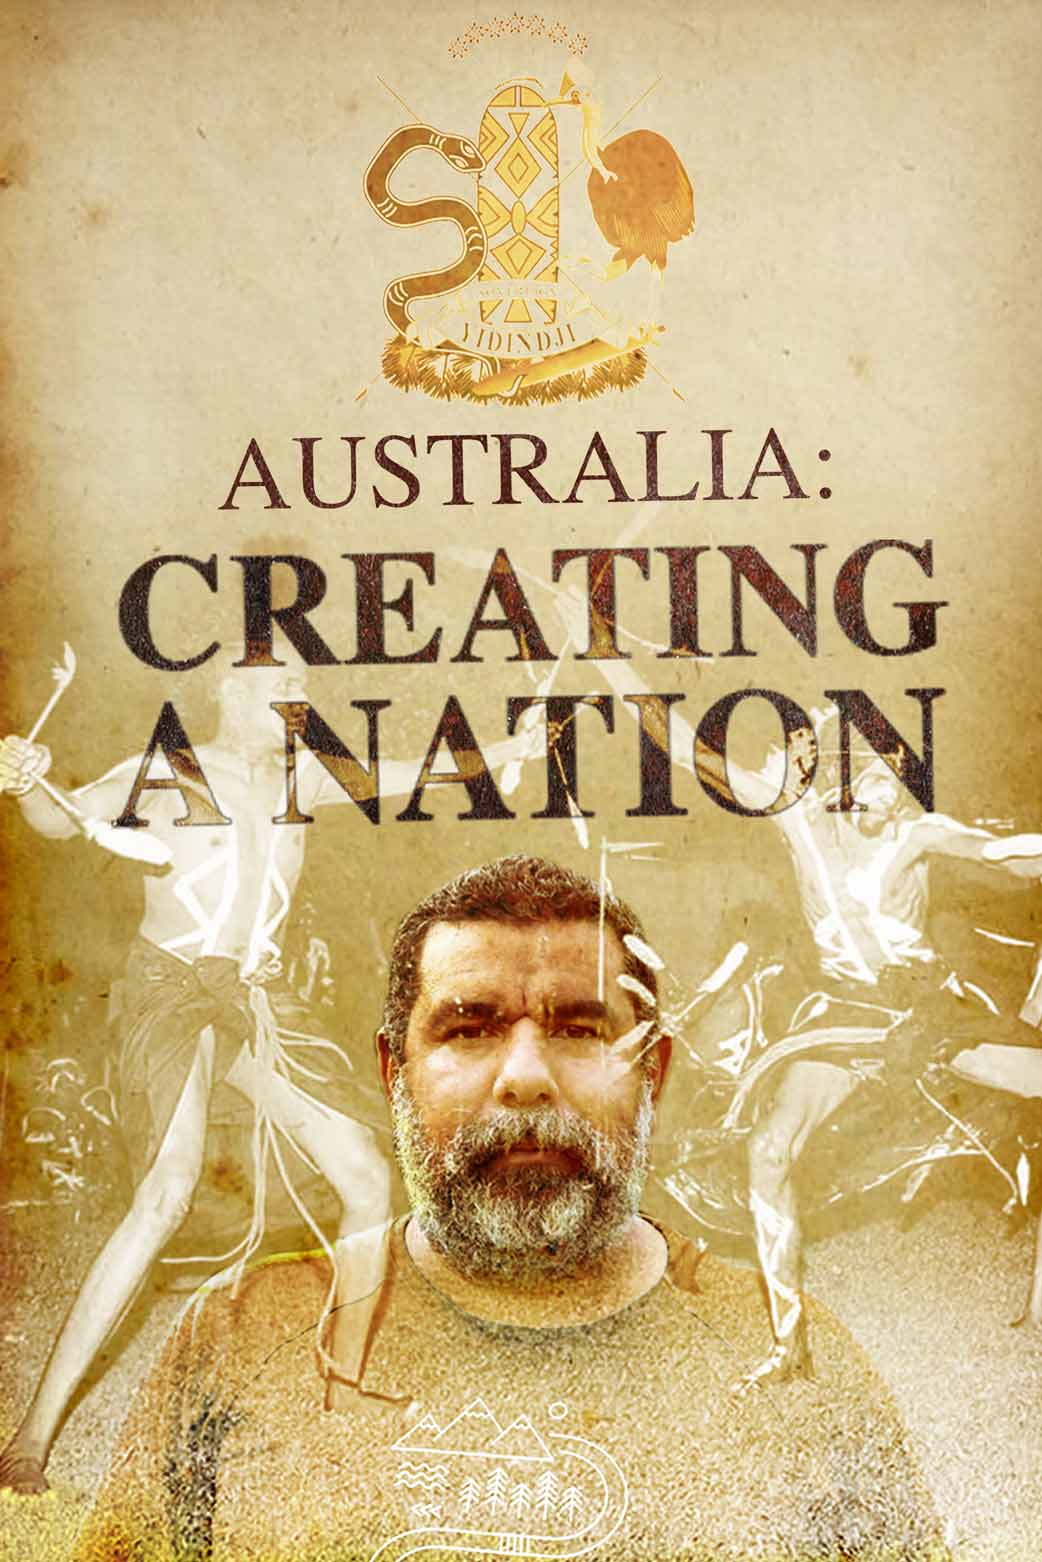 Australia: Creating a Nation